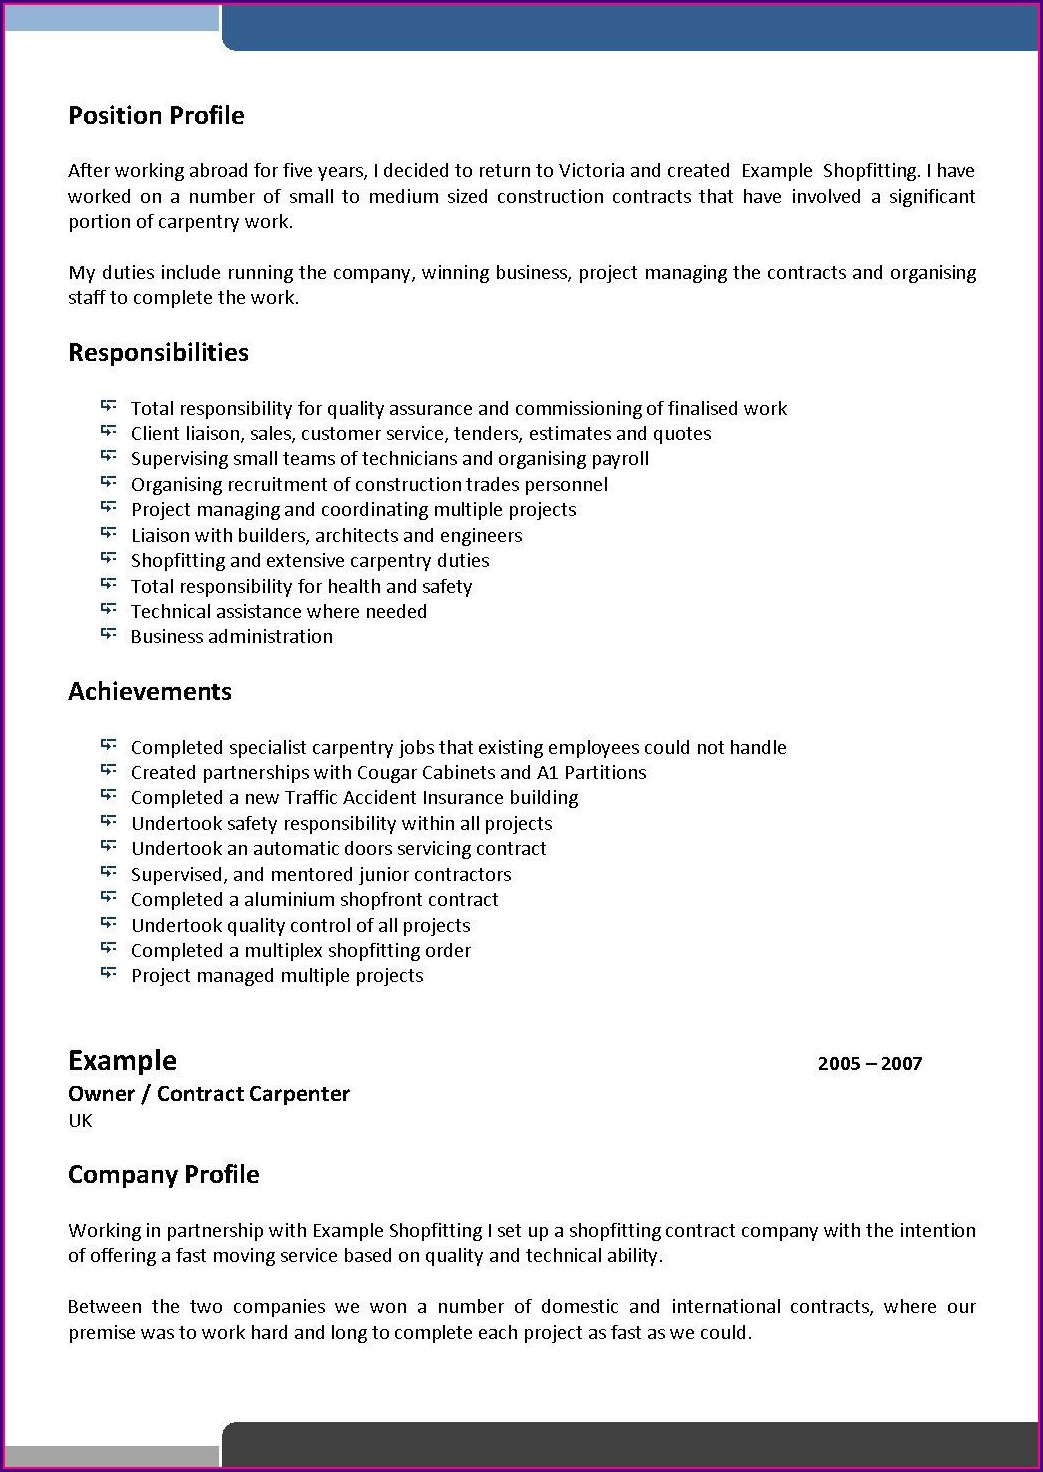 Free Resume Samples Download For Freshers